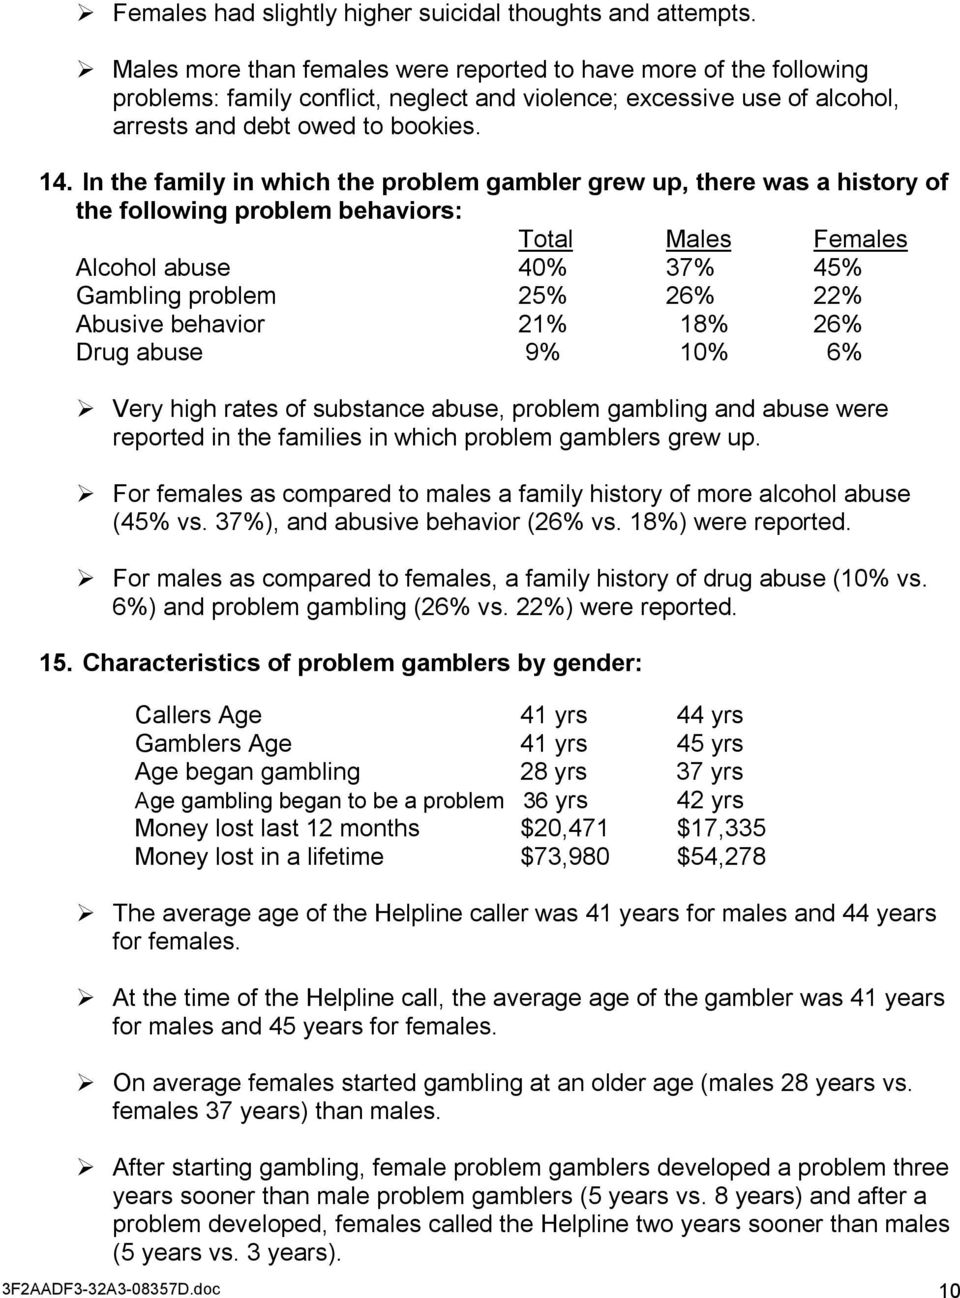 In the family in which the problem gambler grew up, there was a history of the following problem behaviors: Total Males Females Alcohol abuse 40% 37% 45% Gambling problem 25% 26% 22% Abusive behavior